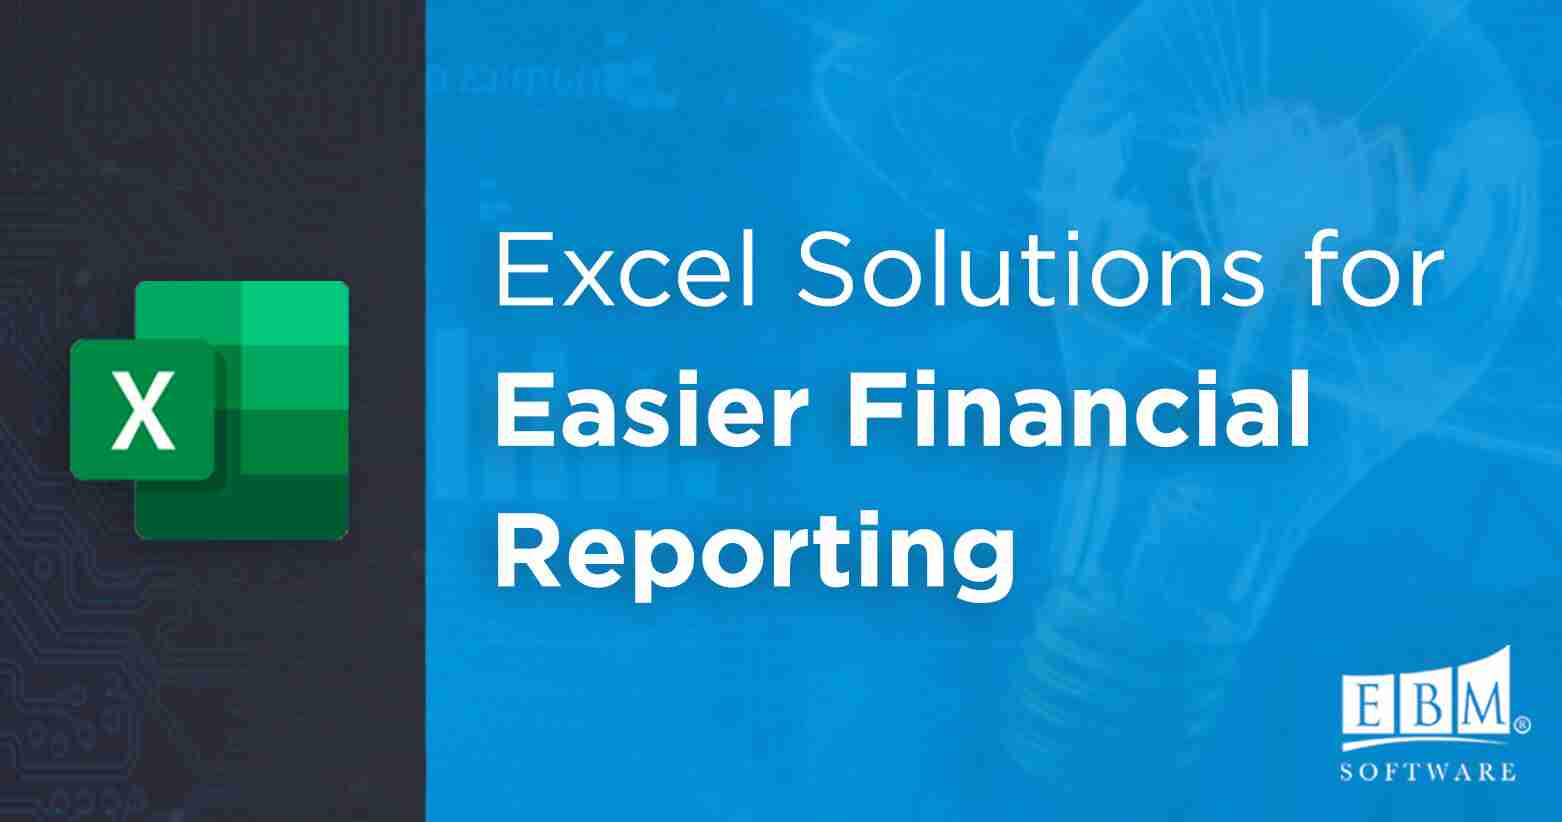 Excel Solutions for Easier Financial Reporting